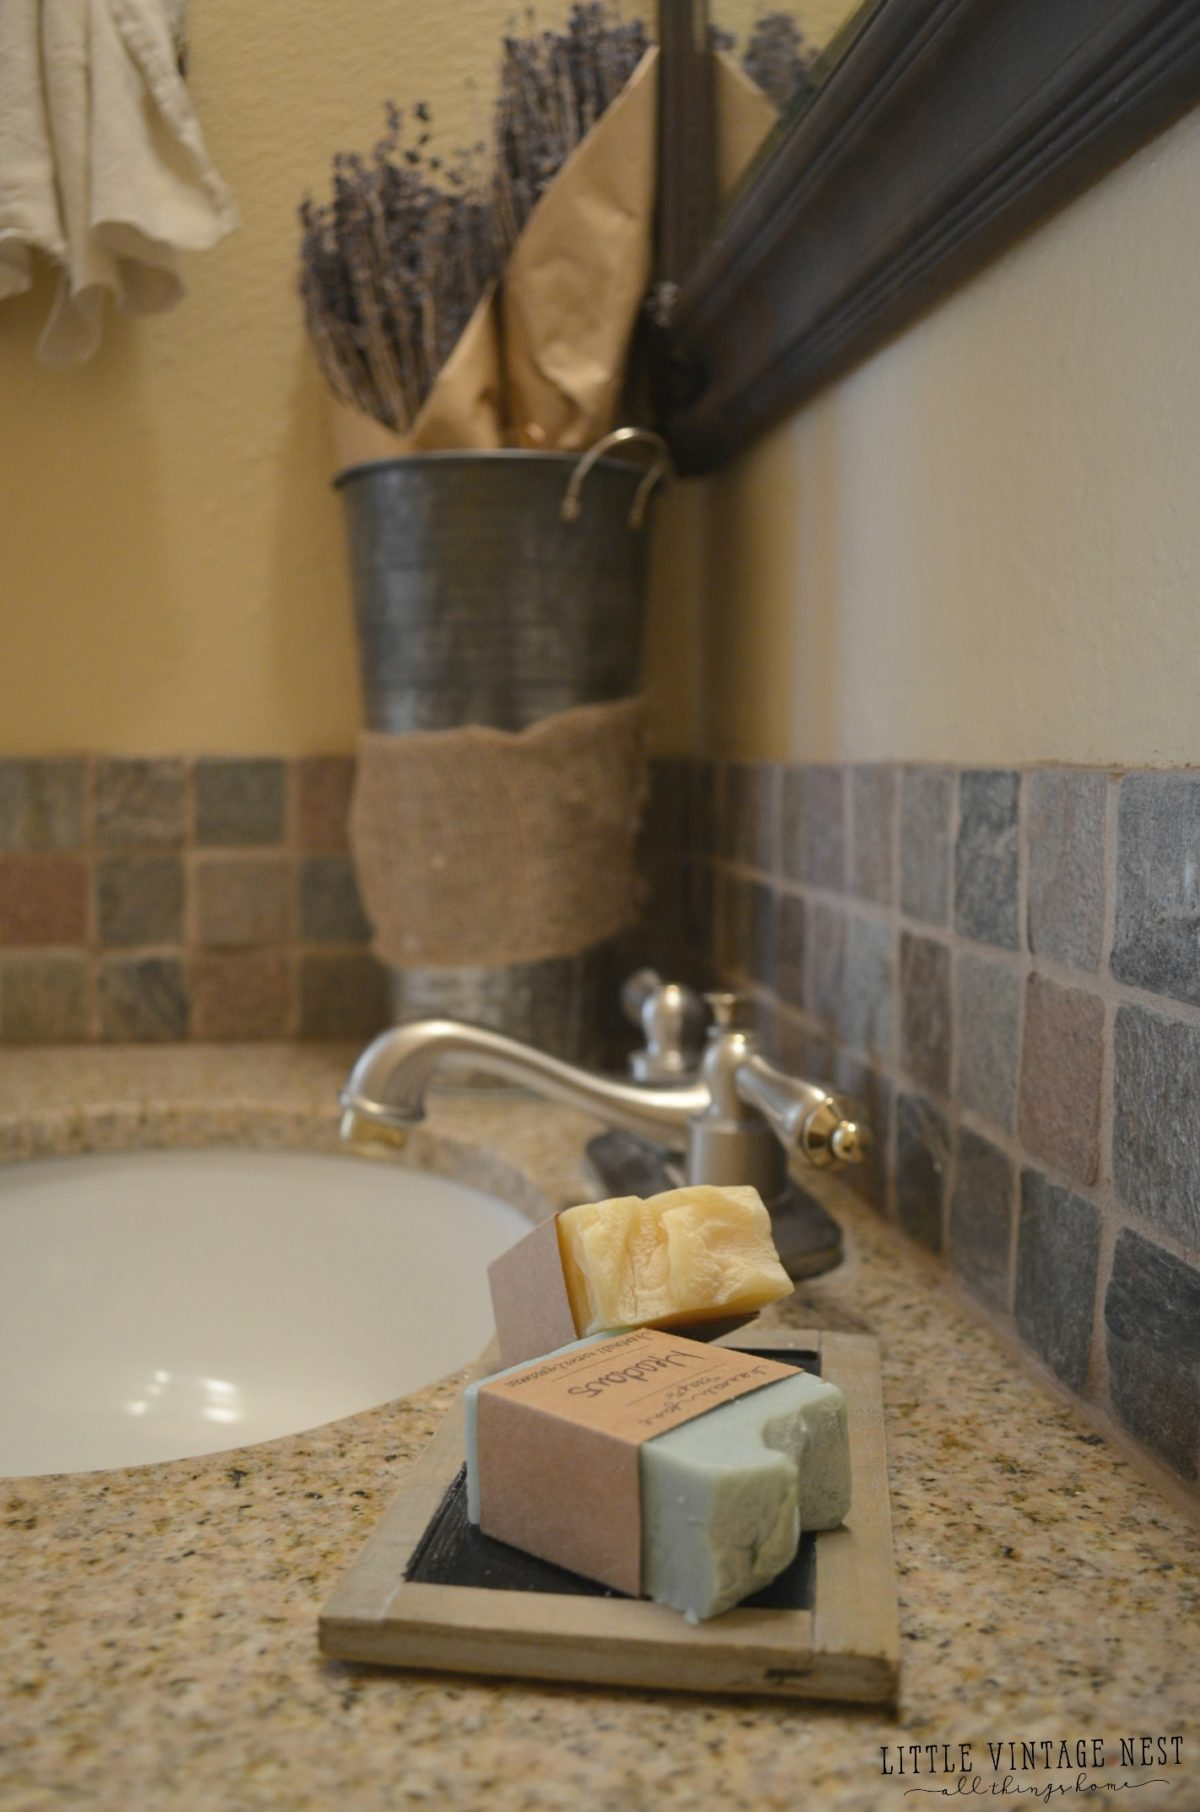 Farmhouse Bathroom Decor and Soap - Get Small Farmhouse Bathroom Decor Background